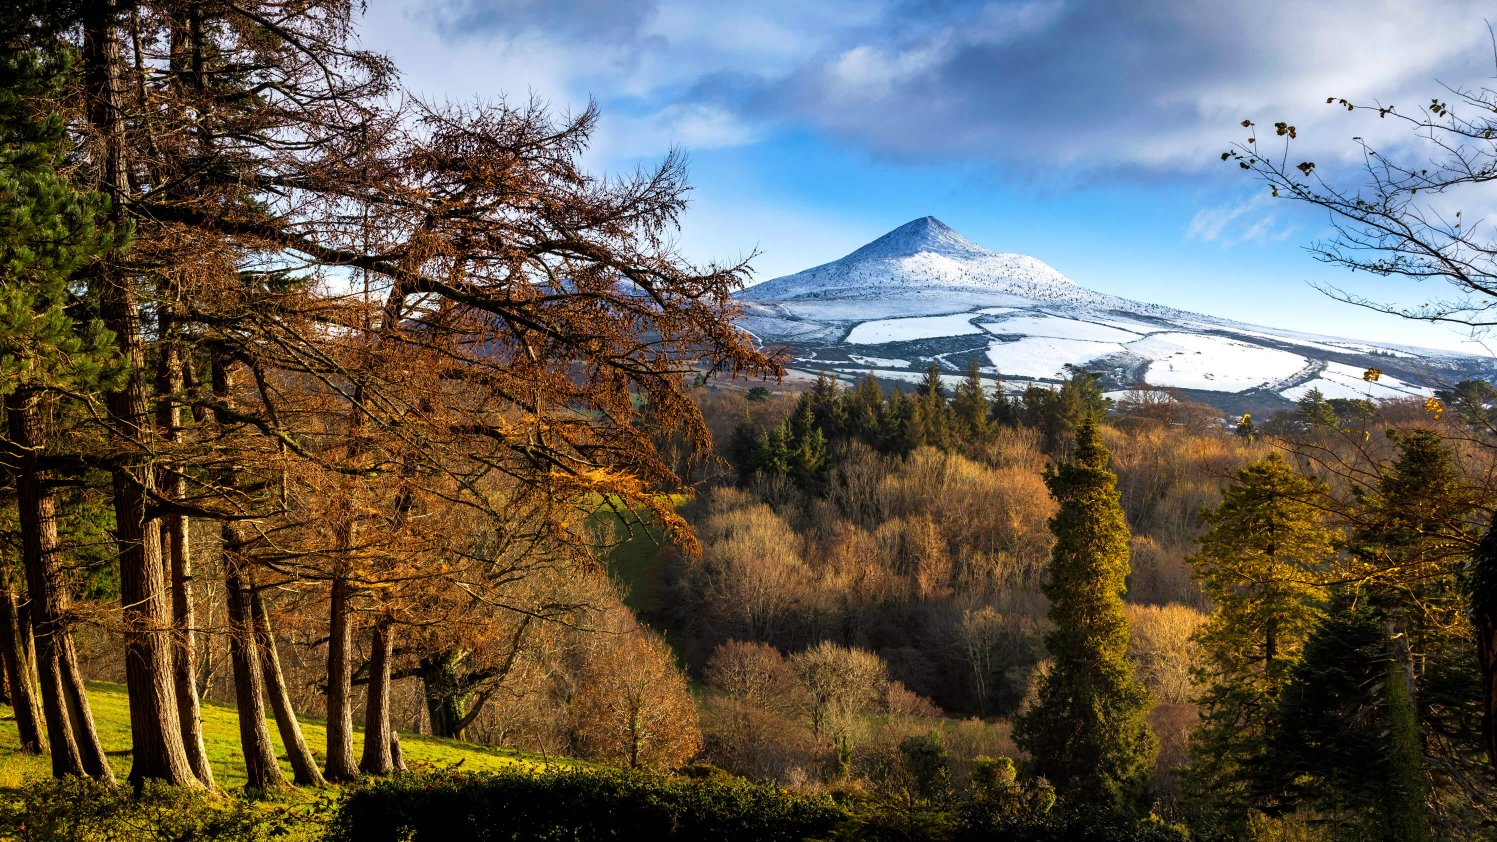 Snow capped Sugarloaf mountain in Wicklow